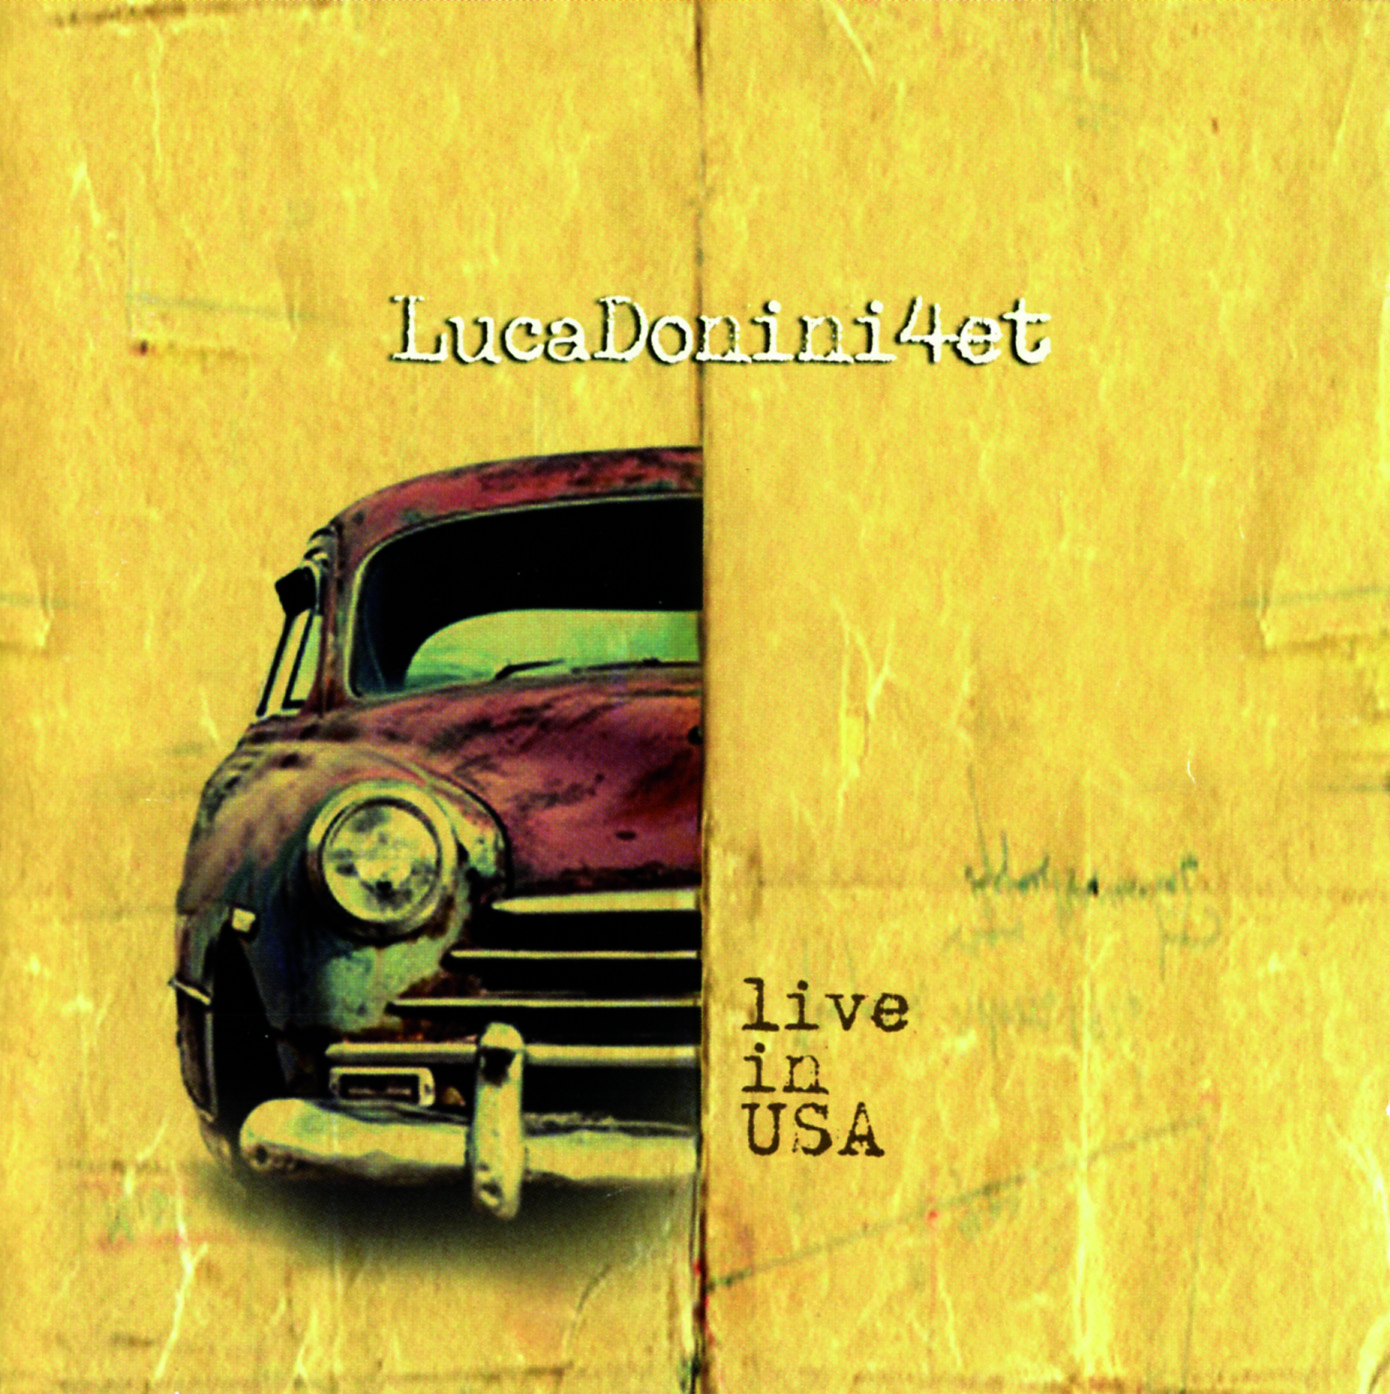 LUCA DONINI 4ET - LIVE IN USA - CD